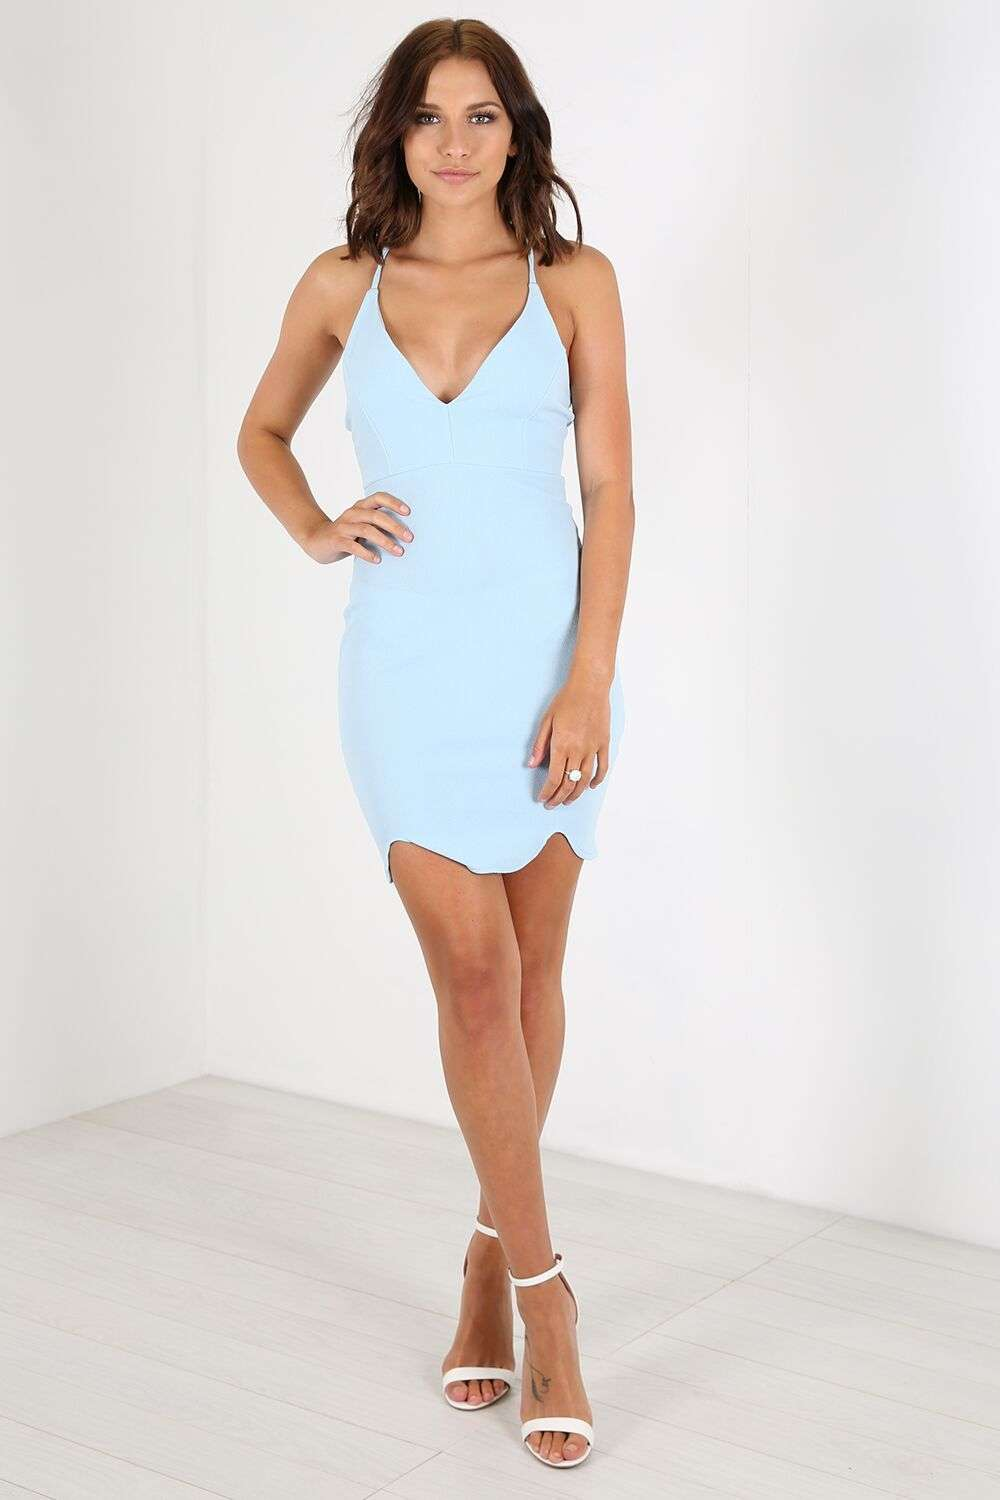 Camille Racer Back Strappy Bodycon Dress - bejealous-com